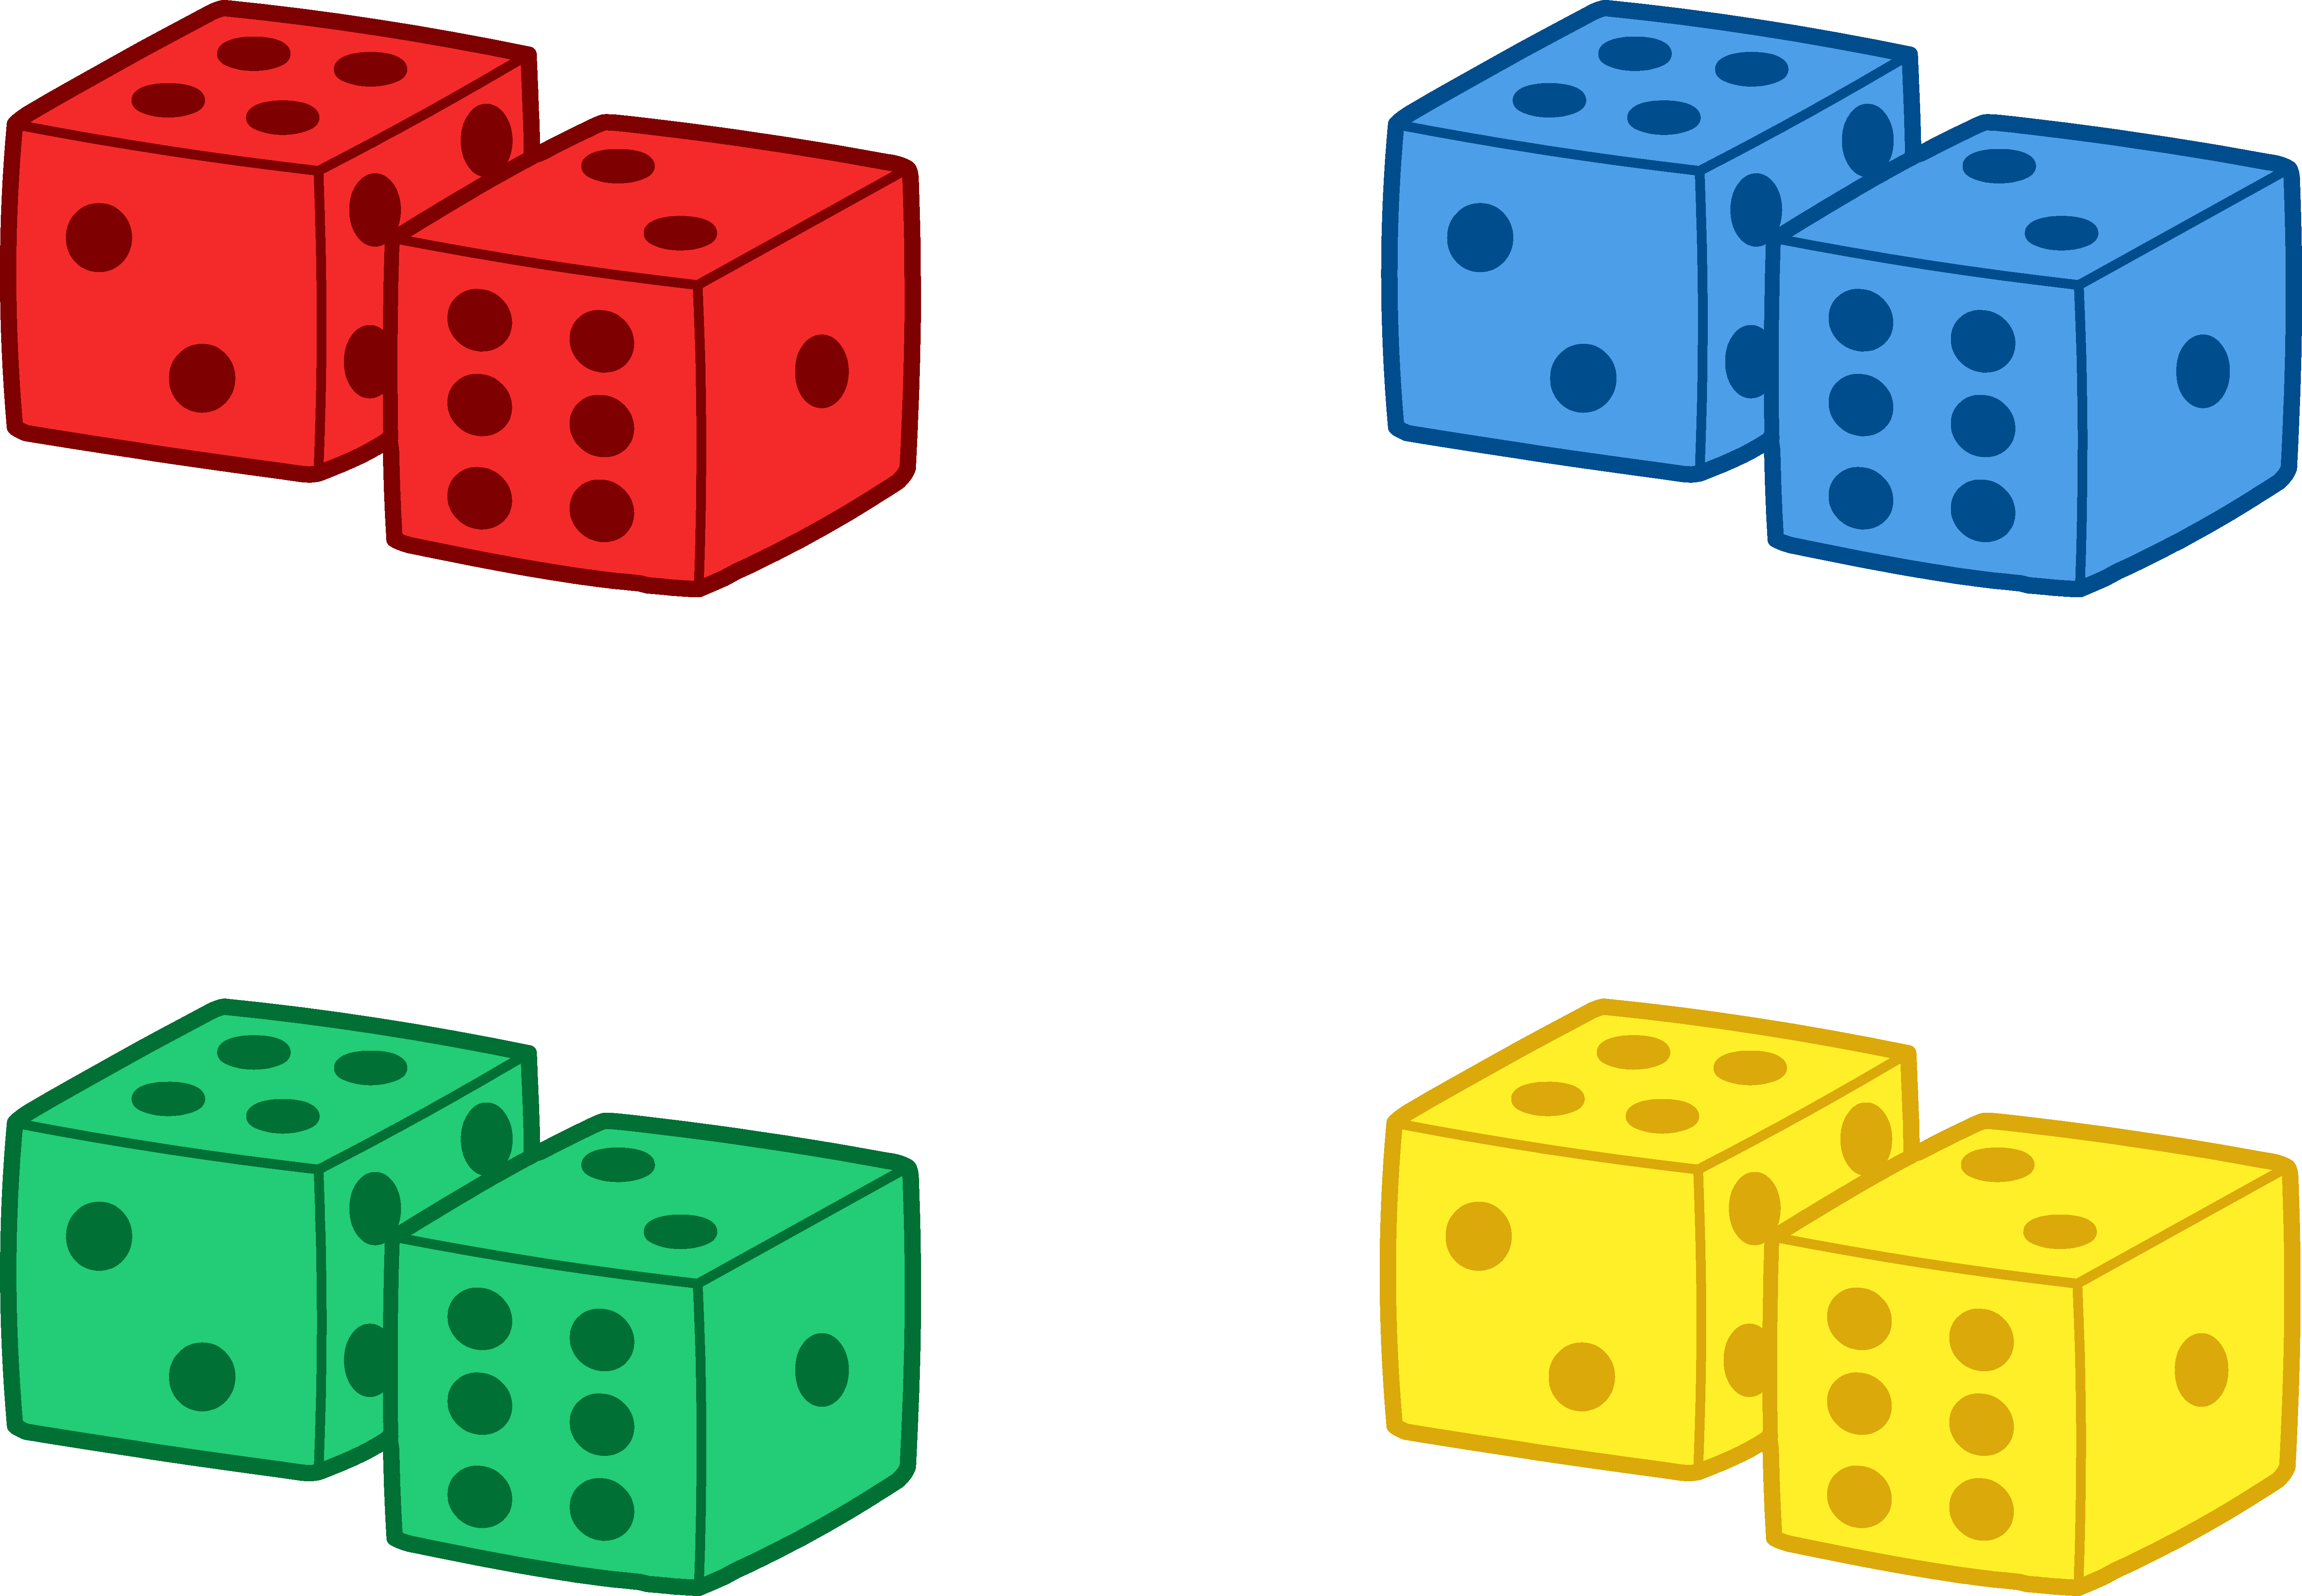 4 dice clipart clipart clip art free library 4 Dice Clipart - Clip Art Library clip art free library